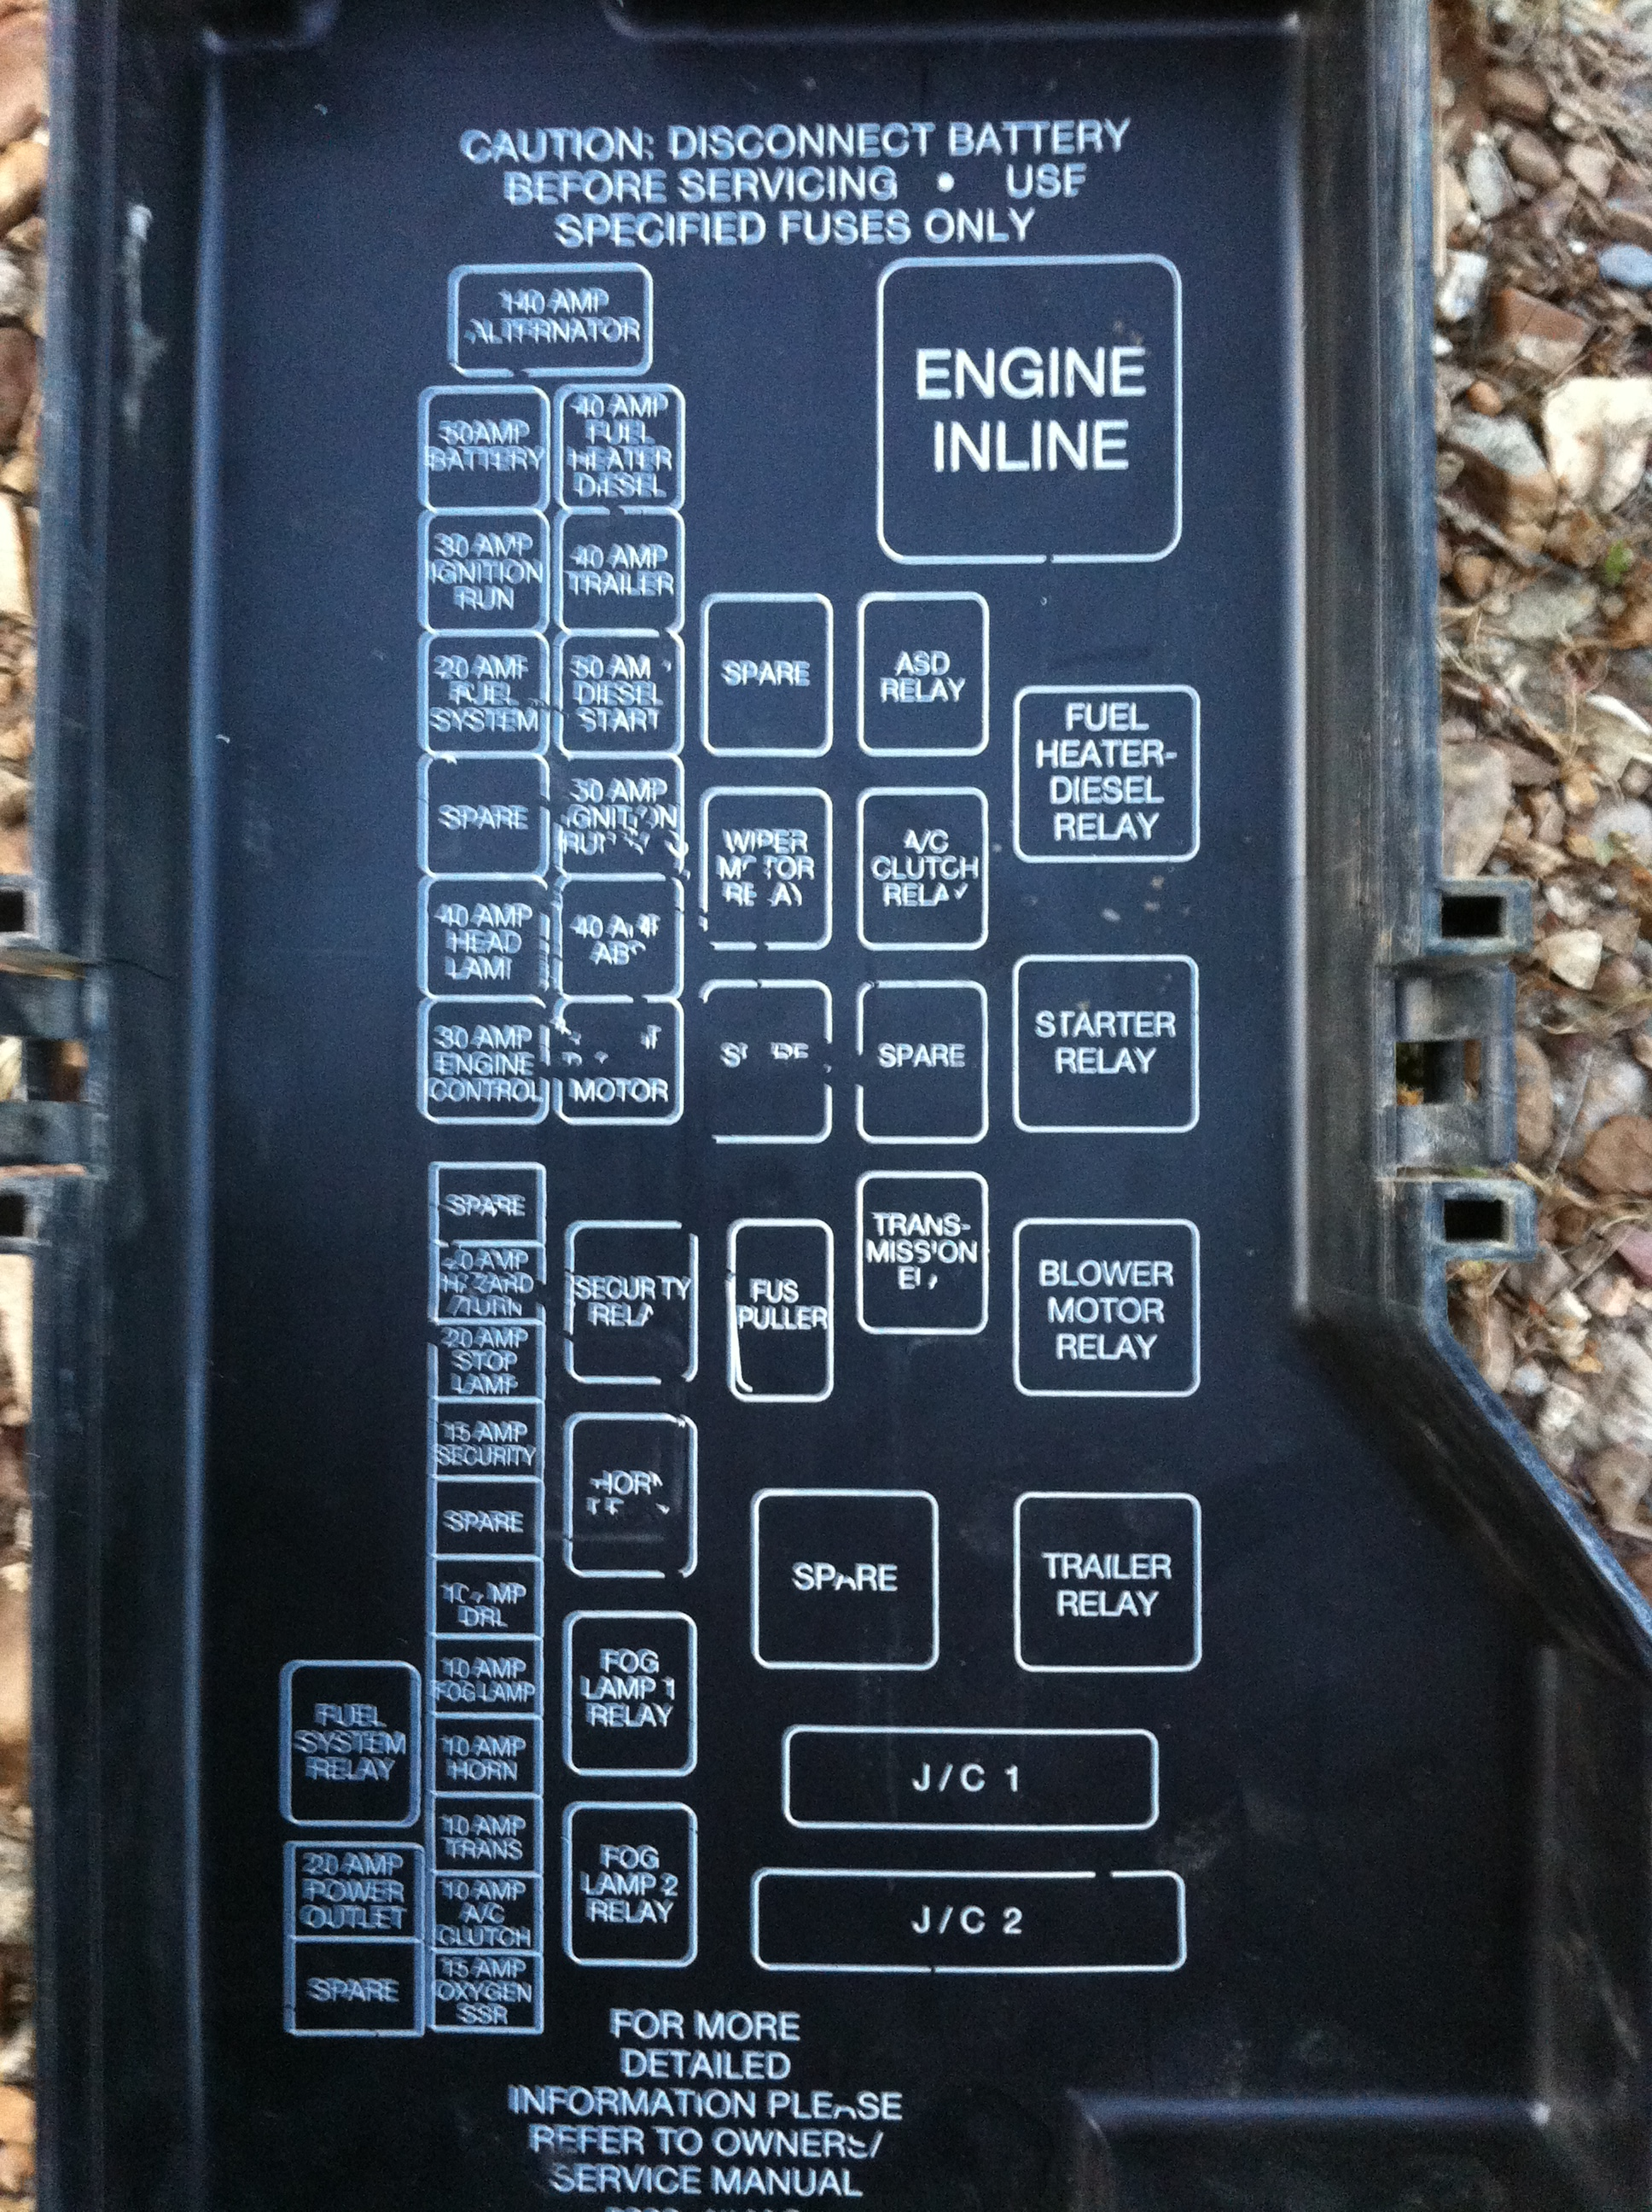 2012 Tahoe Fuse Box Wiring Library Diagram Dodge Ram Trusted Diagrams Rh Chicagoitalianrestaurants Com 2011 Escape